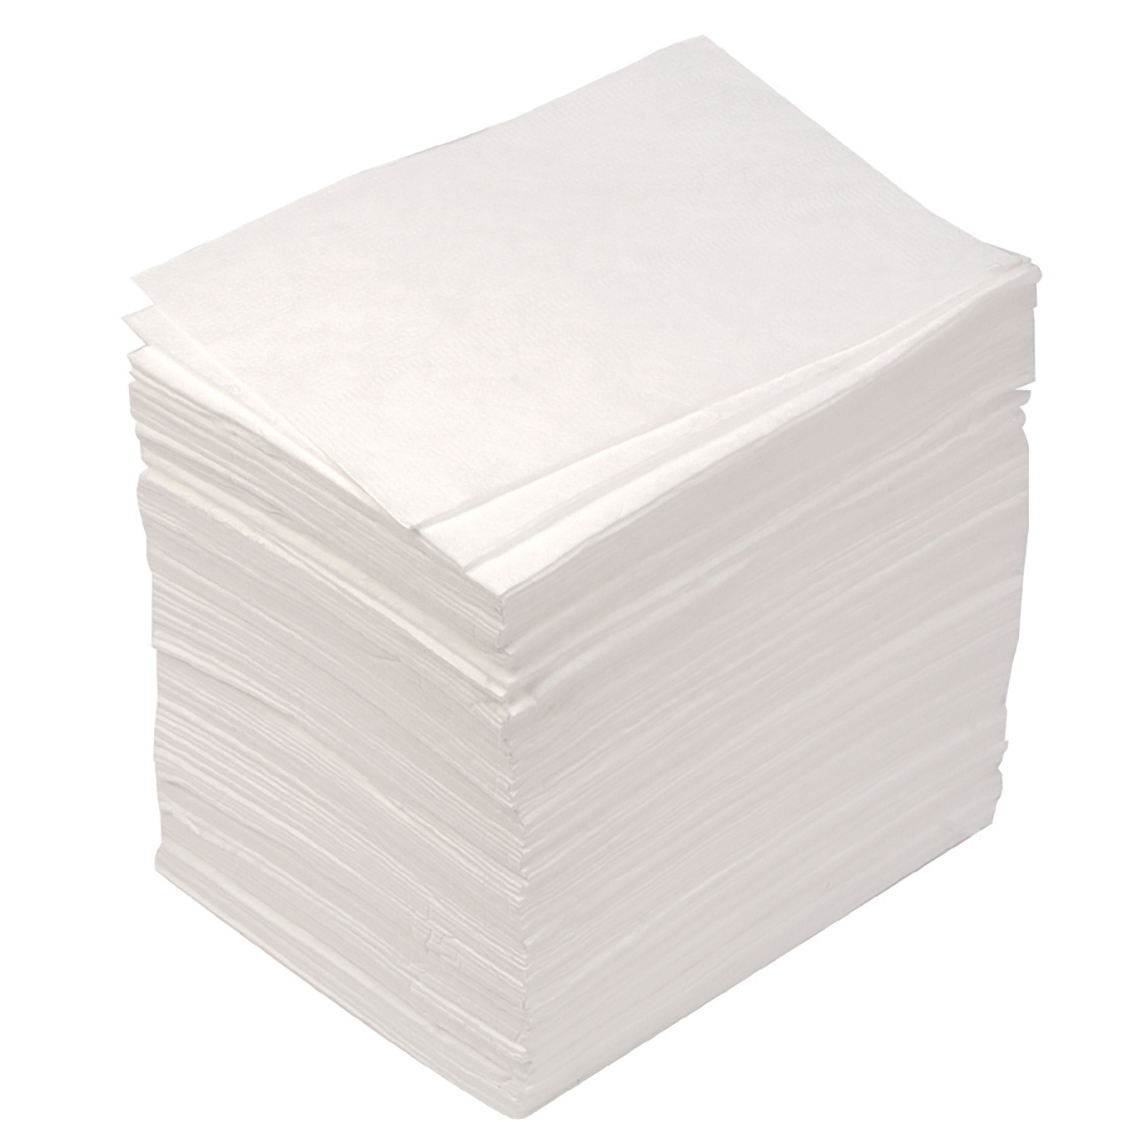 JSP Chemical Cleaning Pads Oil Only Pad Absorbent Meltblown Polypropylene Ref PJQ002-500-000 [Pack 100]